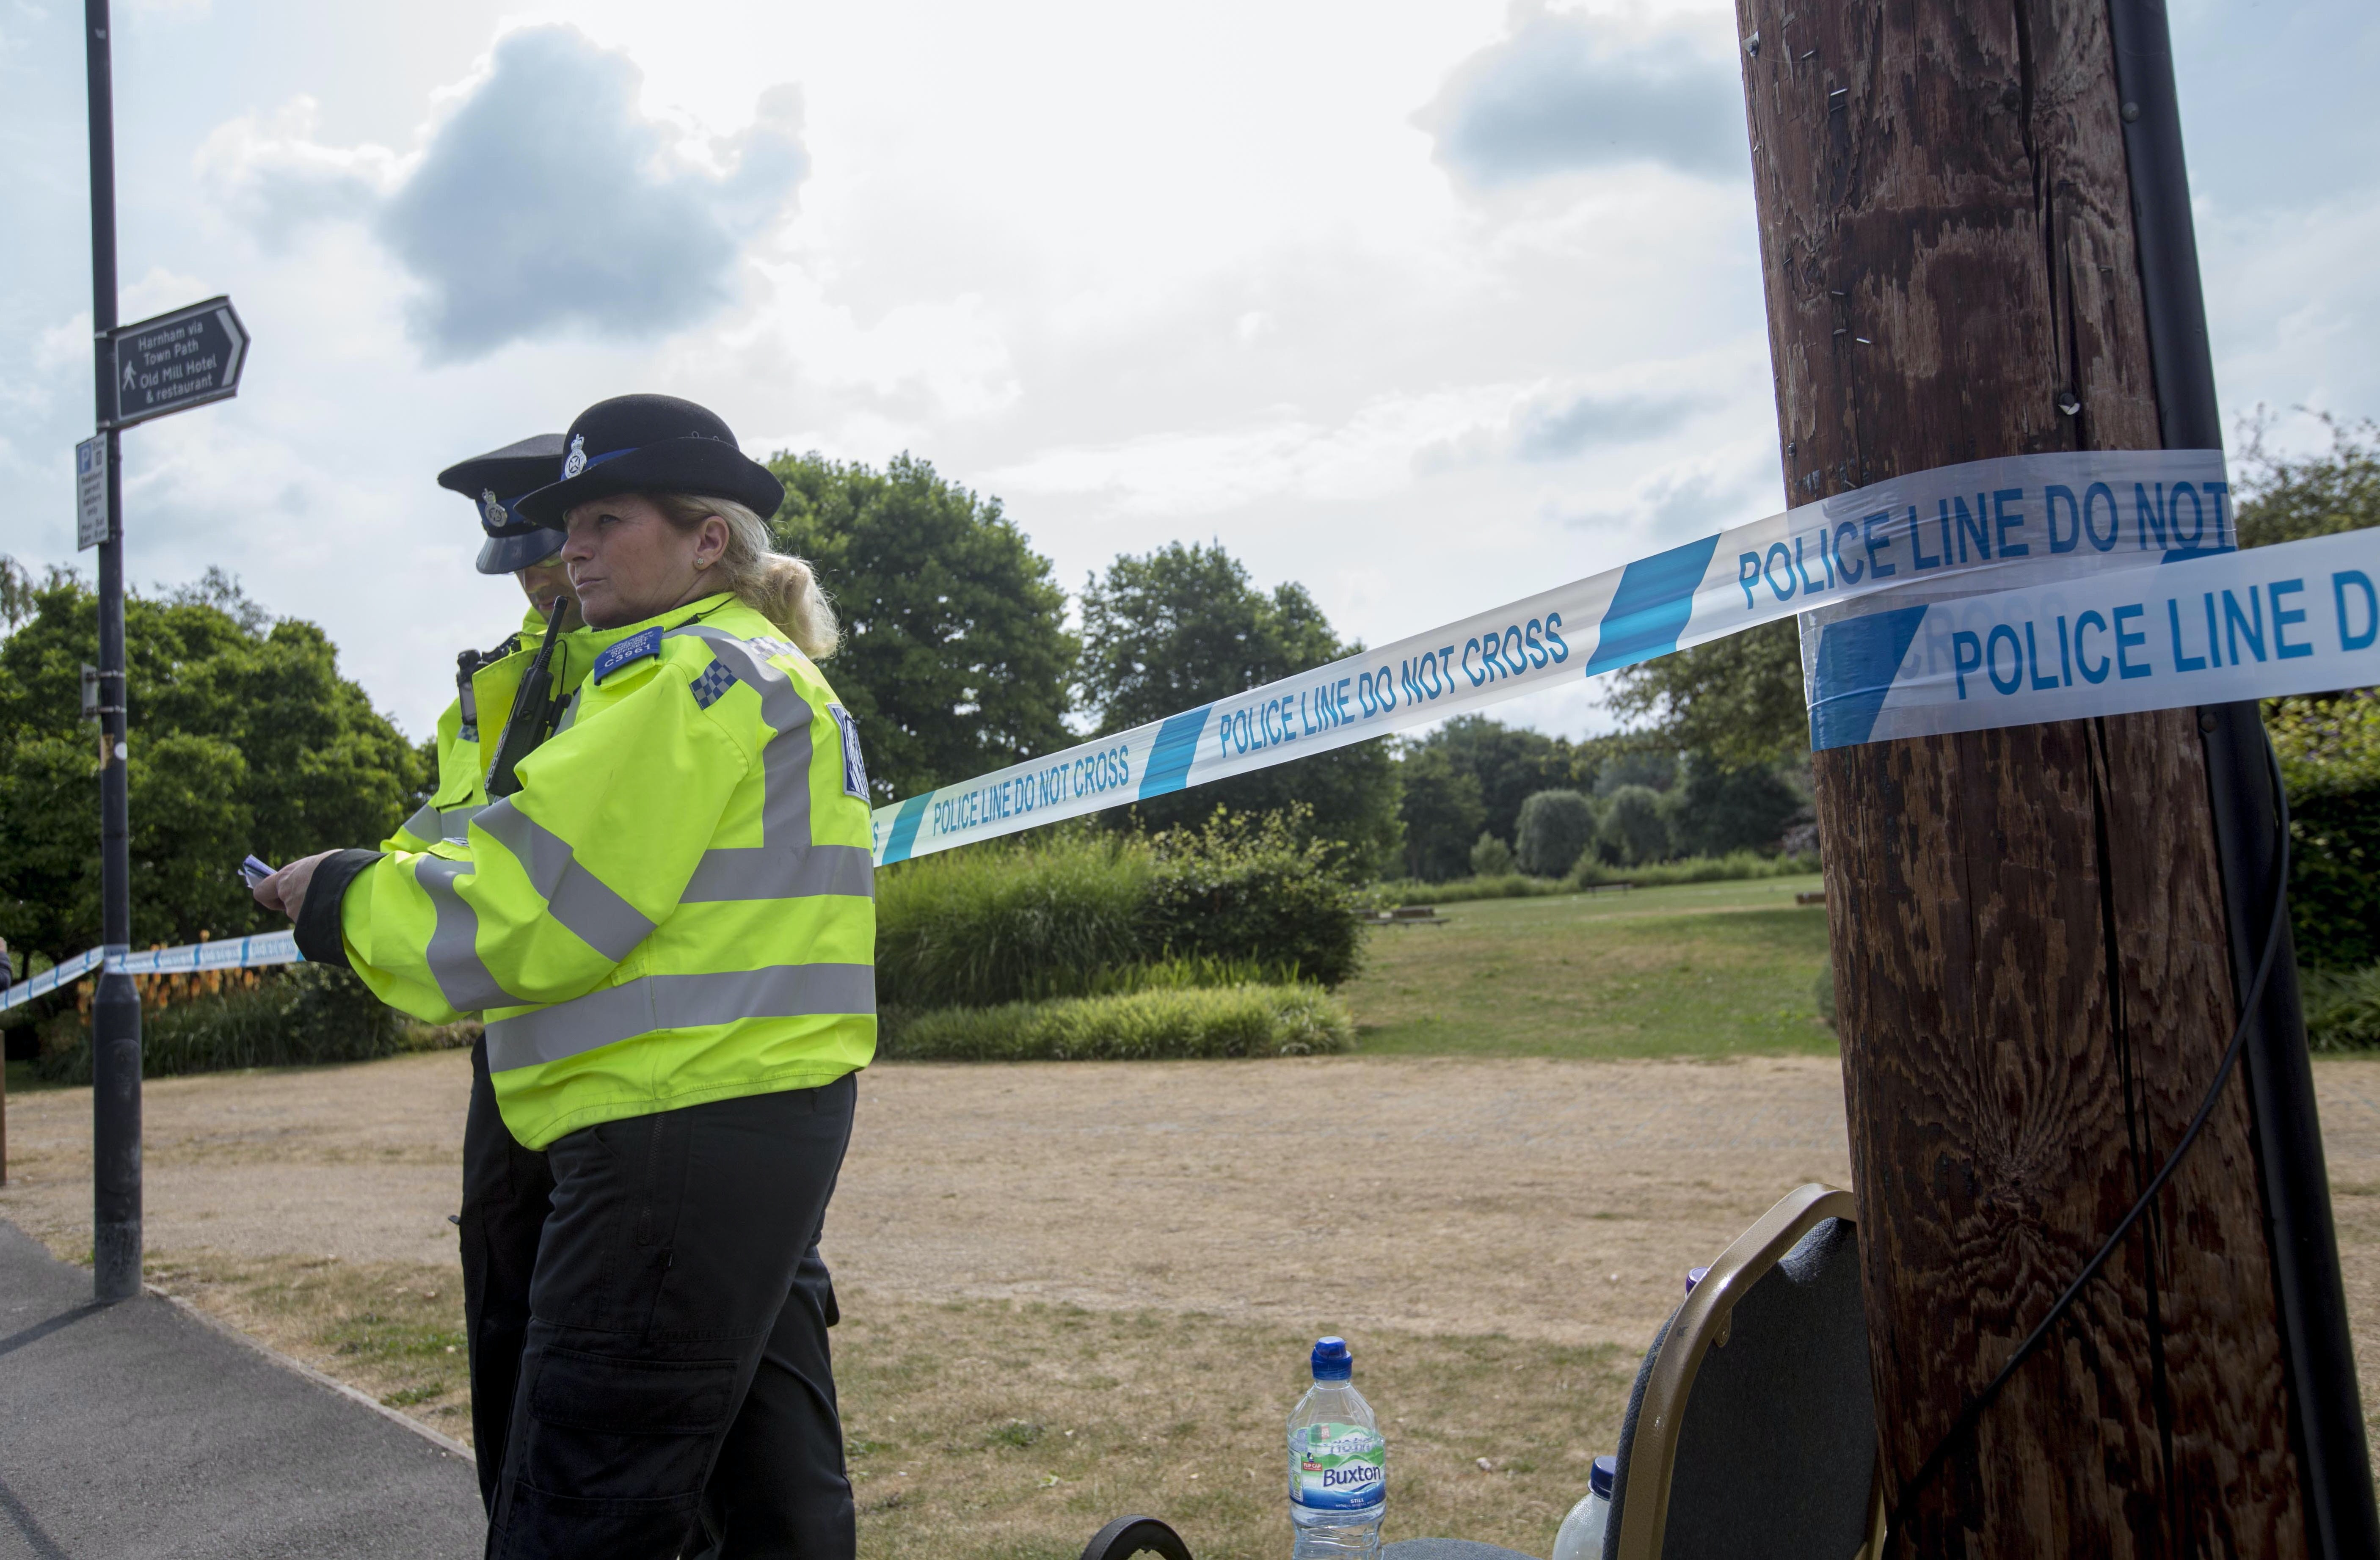 Murder investigation to find the source of a second Novichok poisoning